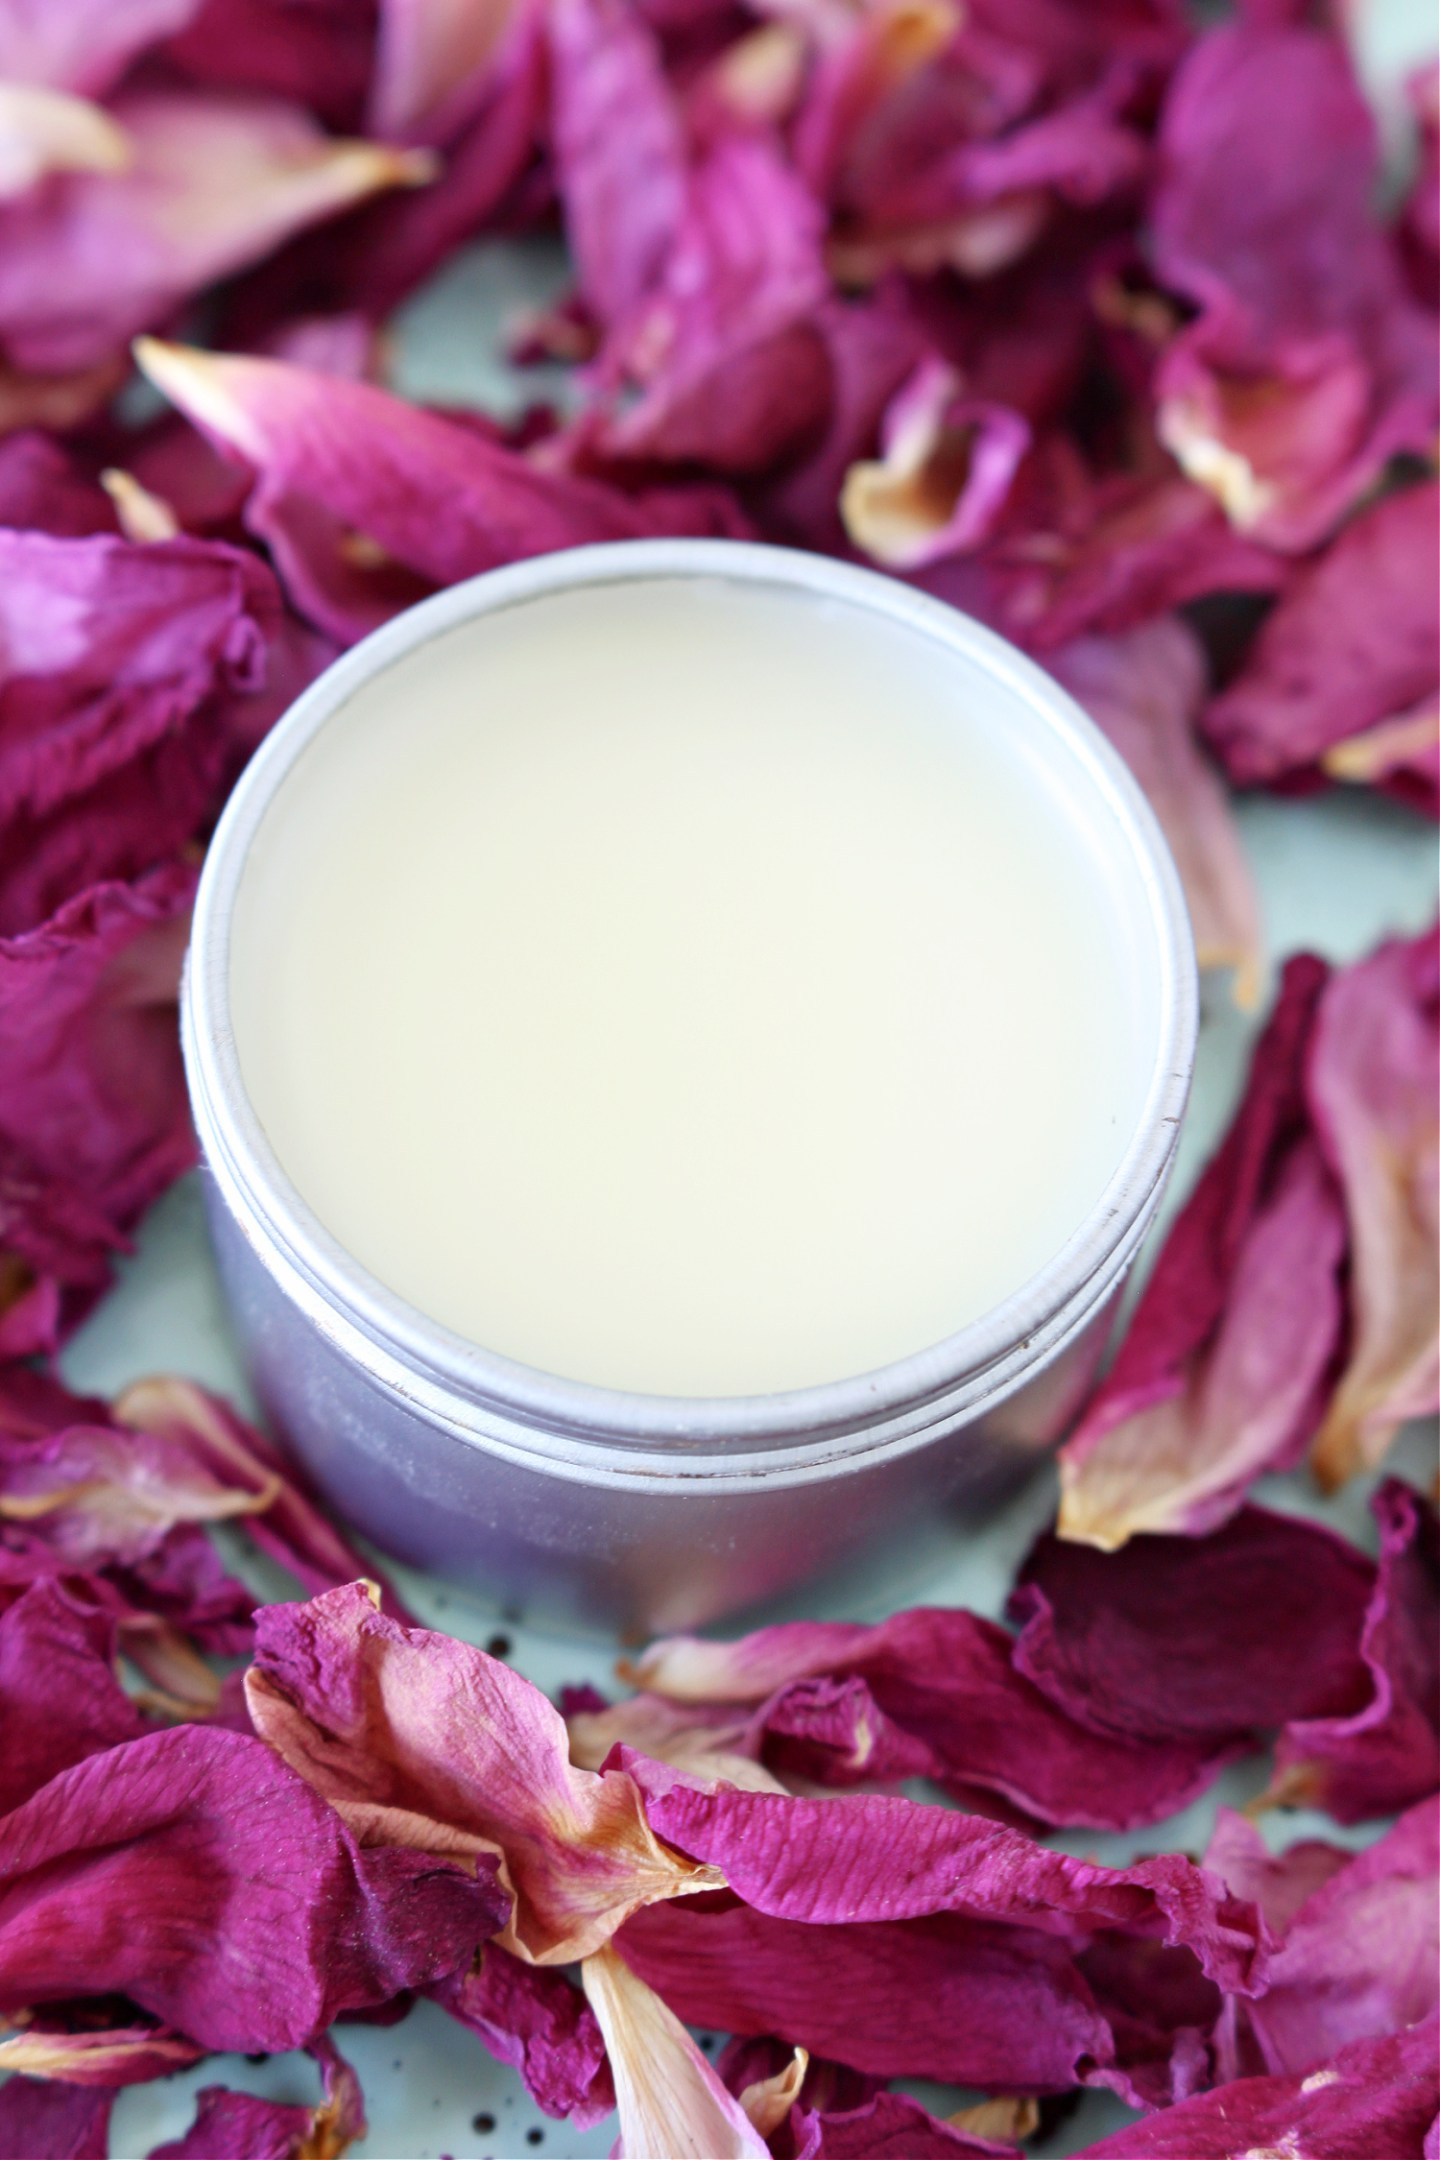 How to Make a Simple Skin Salve